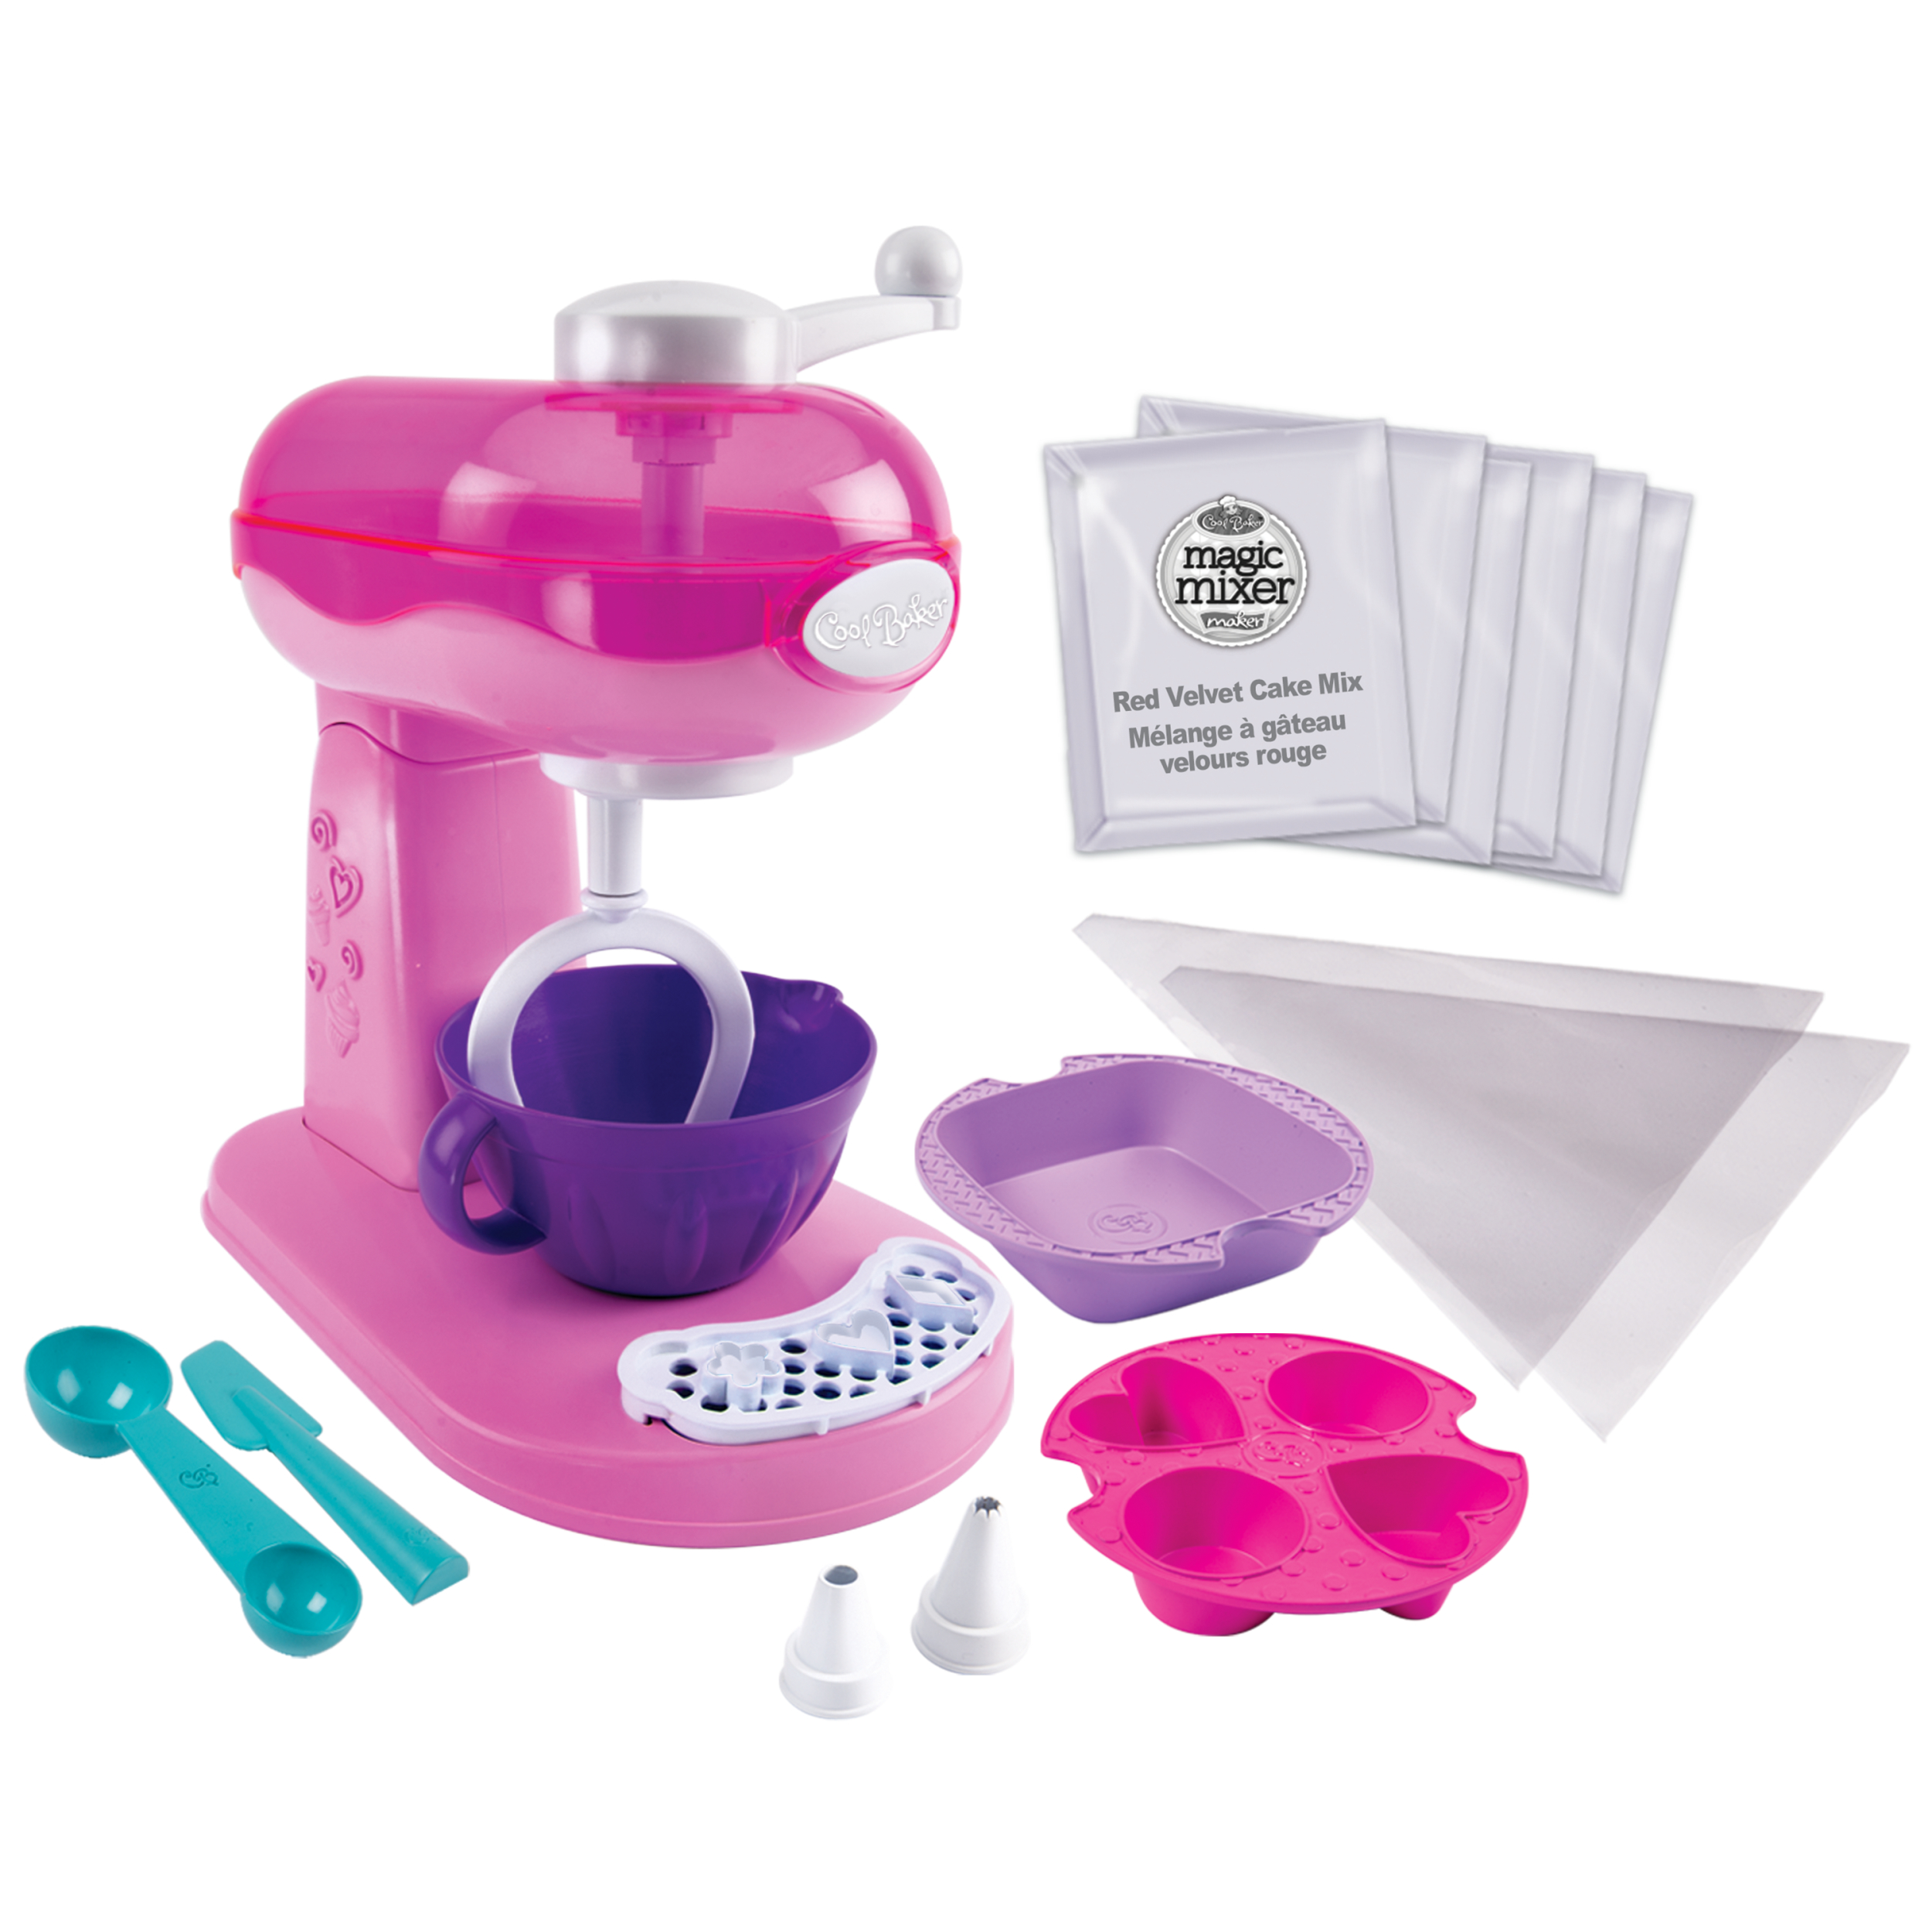 Cool Baker Magic Mixer Maker - Pink - Wal-Mart Exclusive